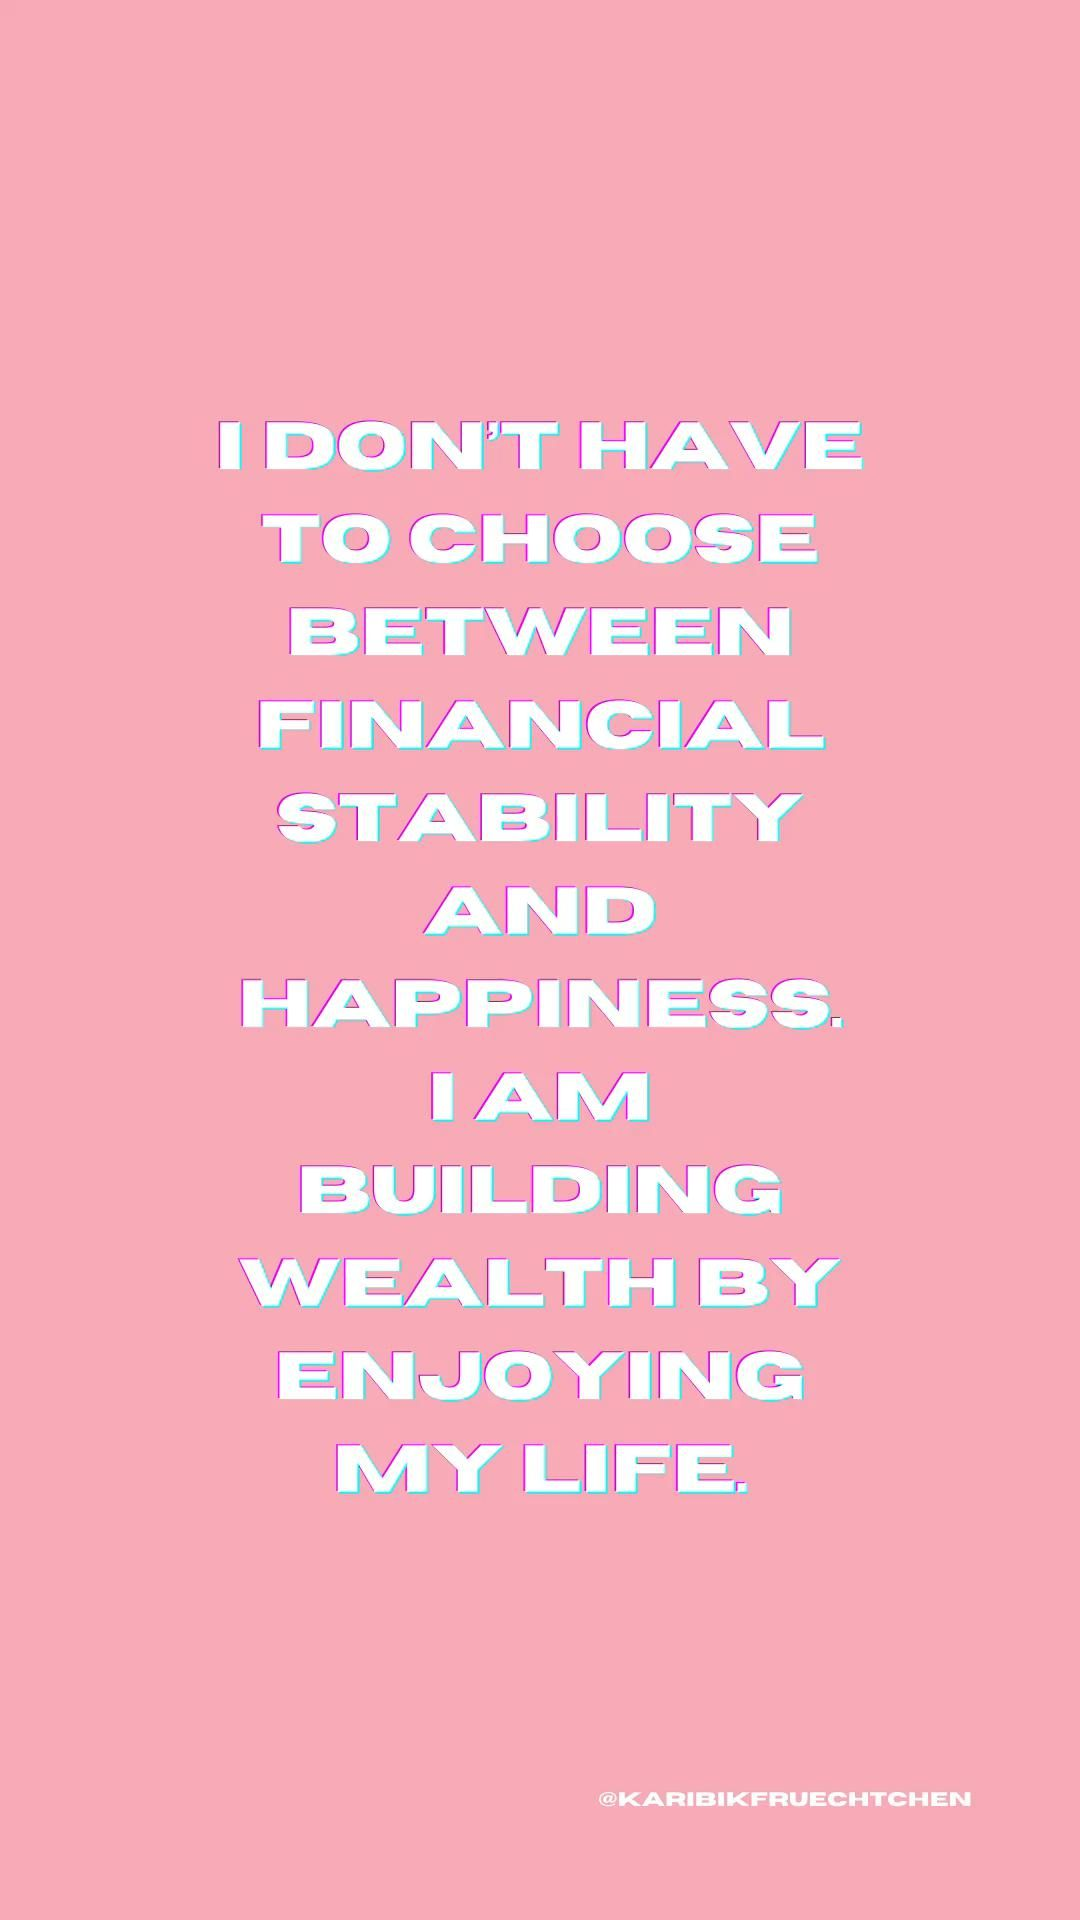 Daily Positive Affirmations for Success and Growth